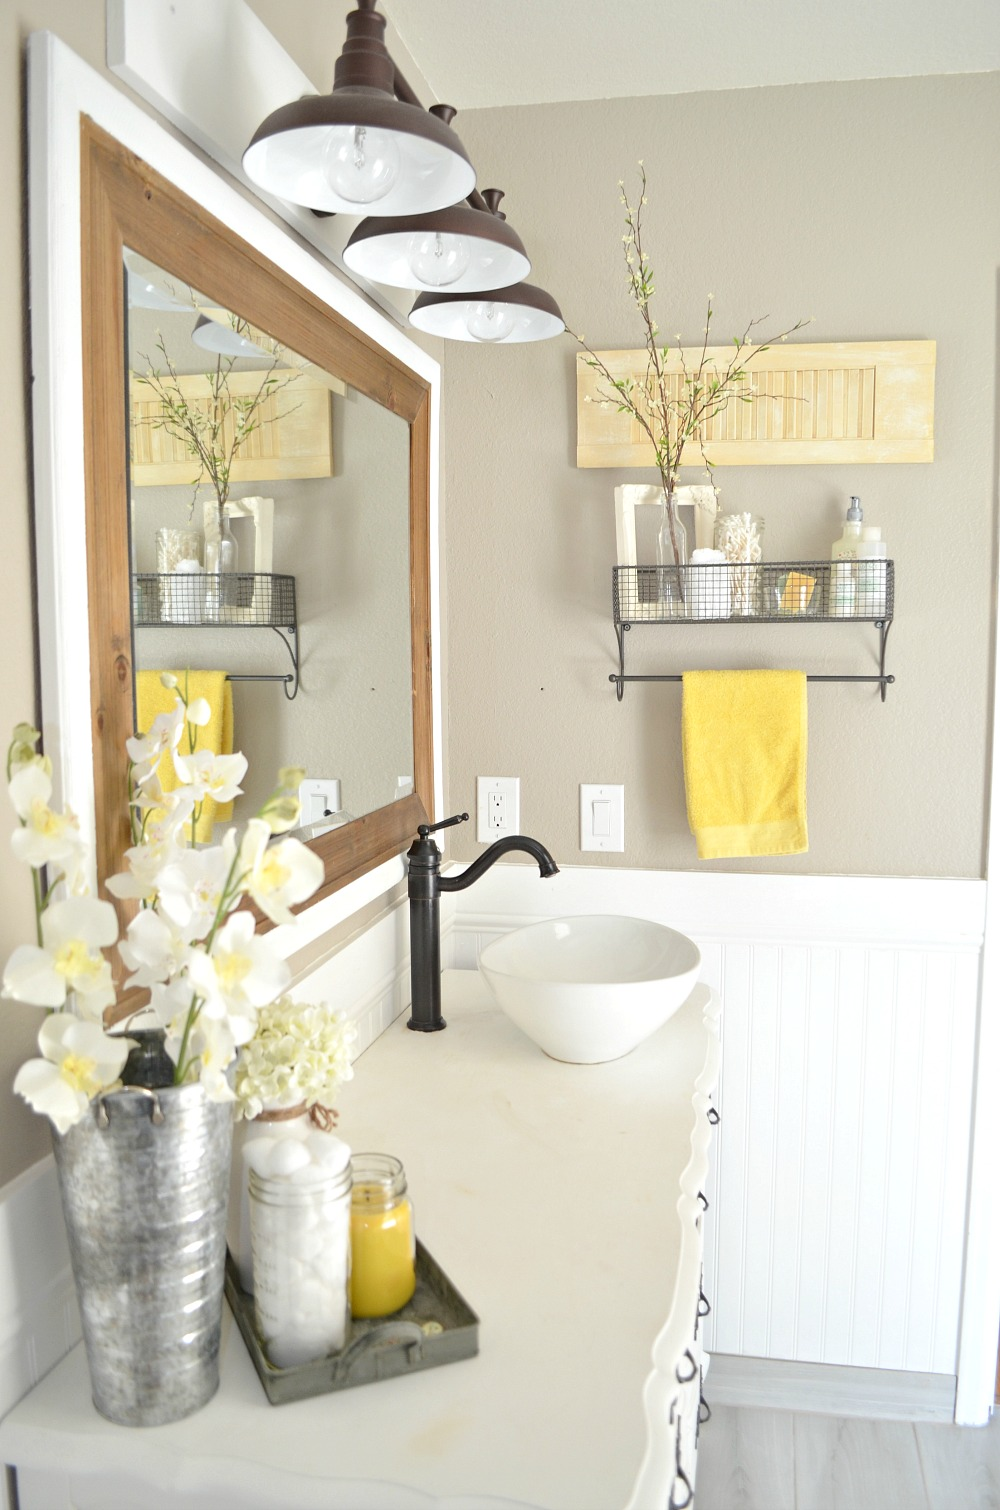 How to easily mix vintage and modern decor little for Bathroom model ideas